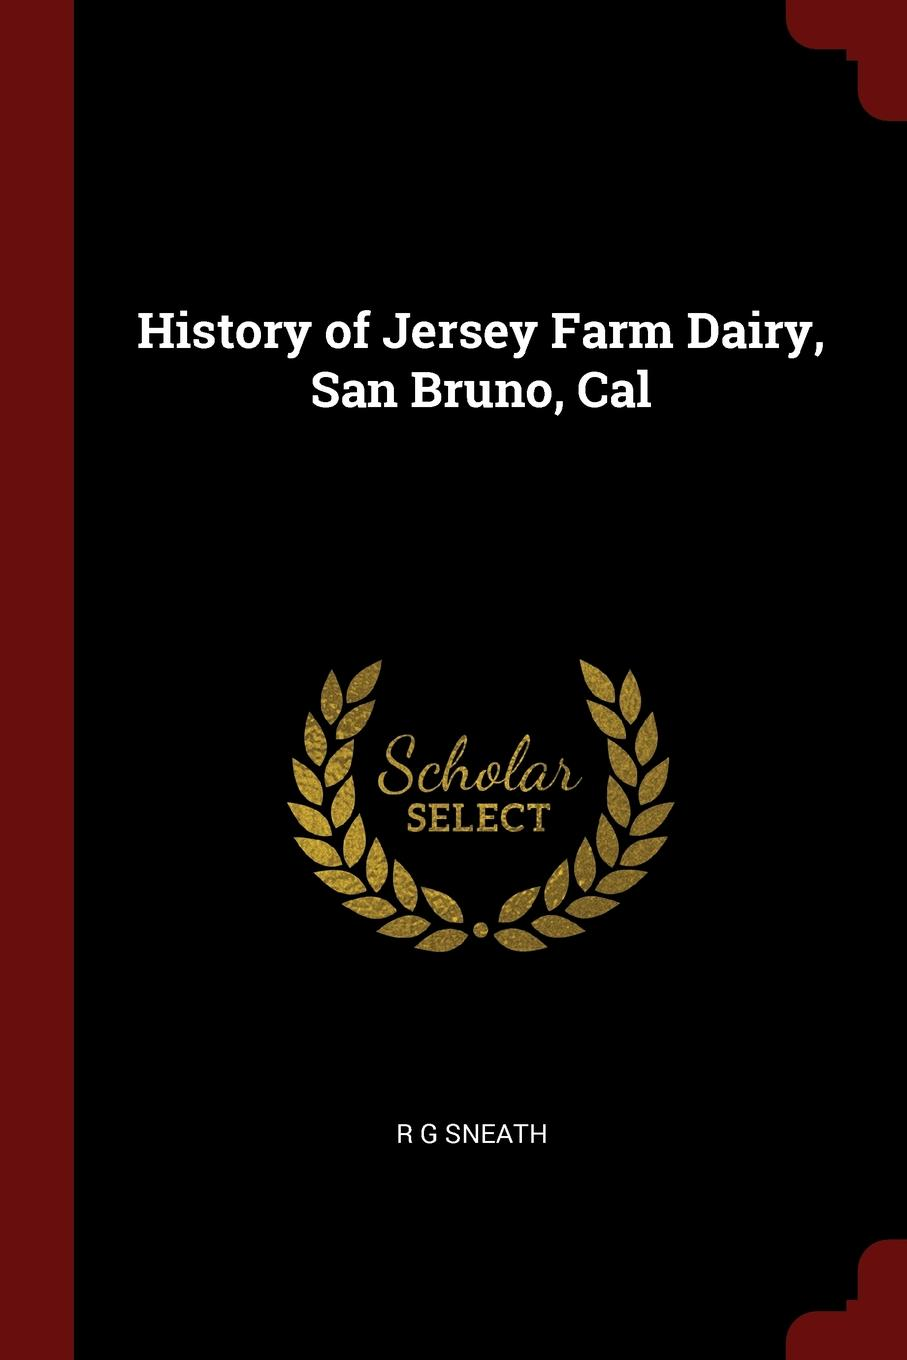 R G Sneath History of Jersey Farm Dairy, San Bruno, Cal